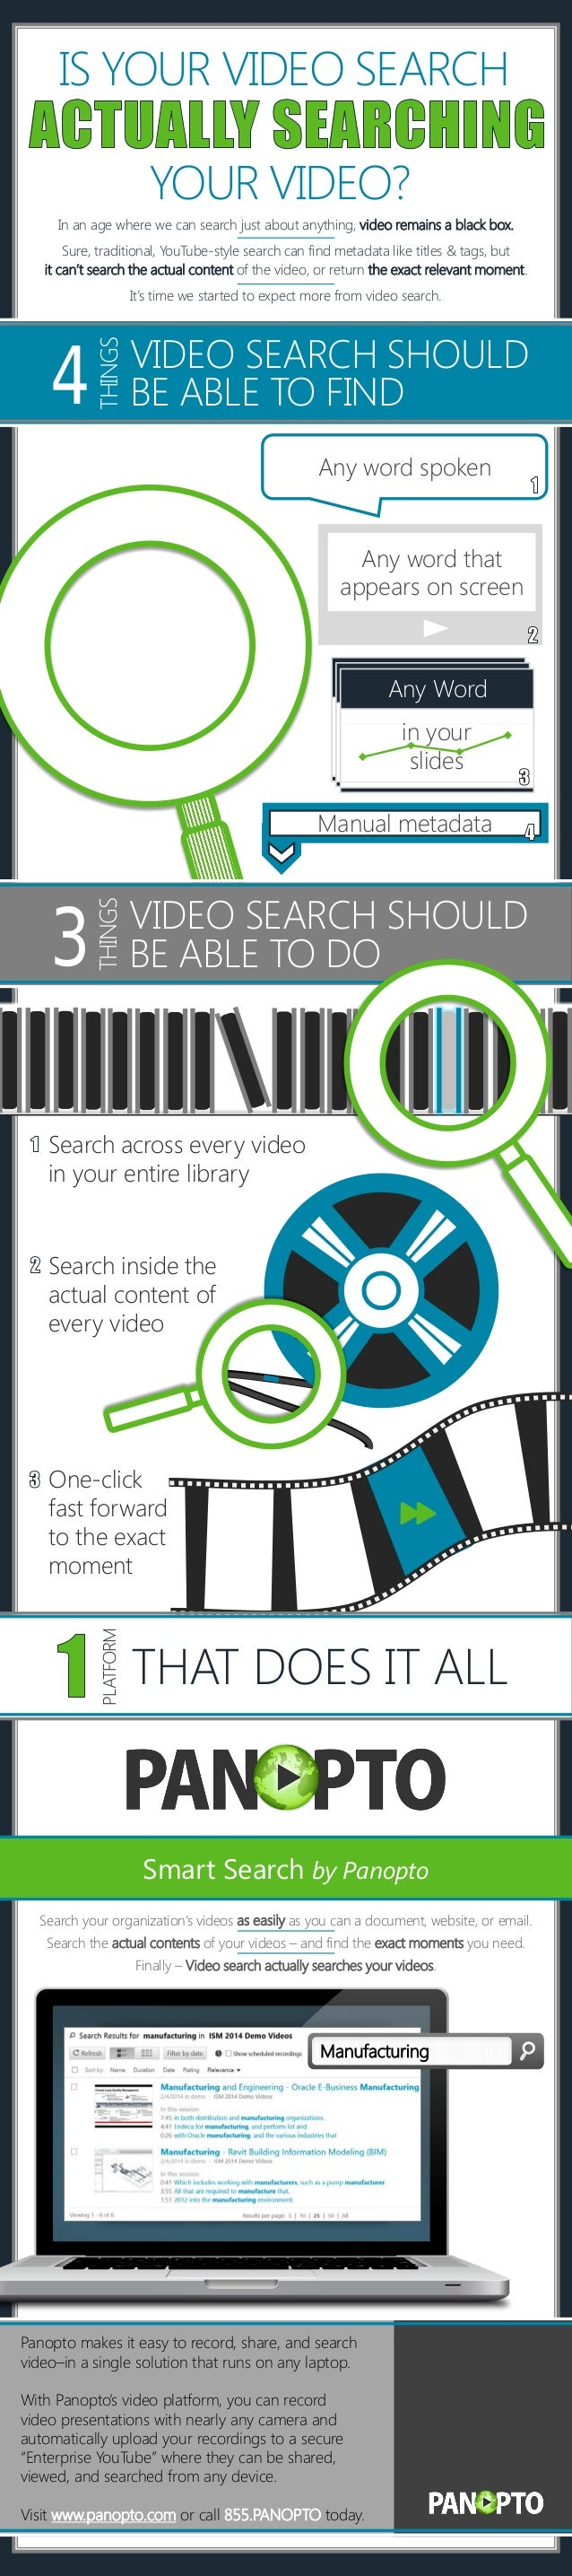 Infographic: Search The Actual Content of Your Videos - Panopto Video Platform